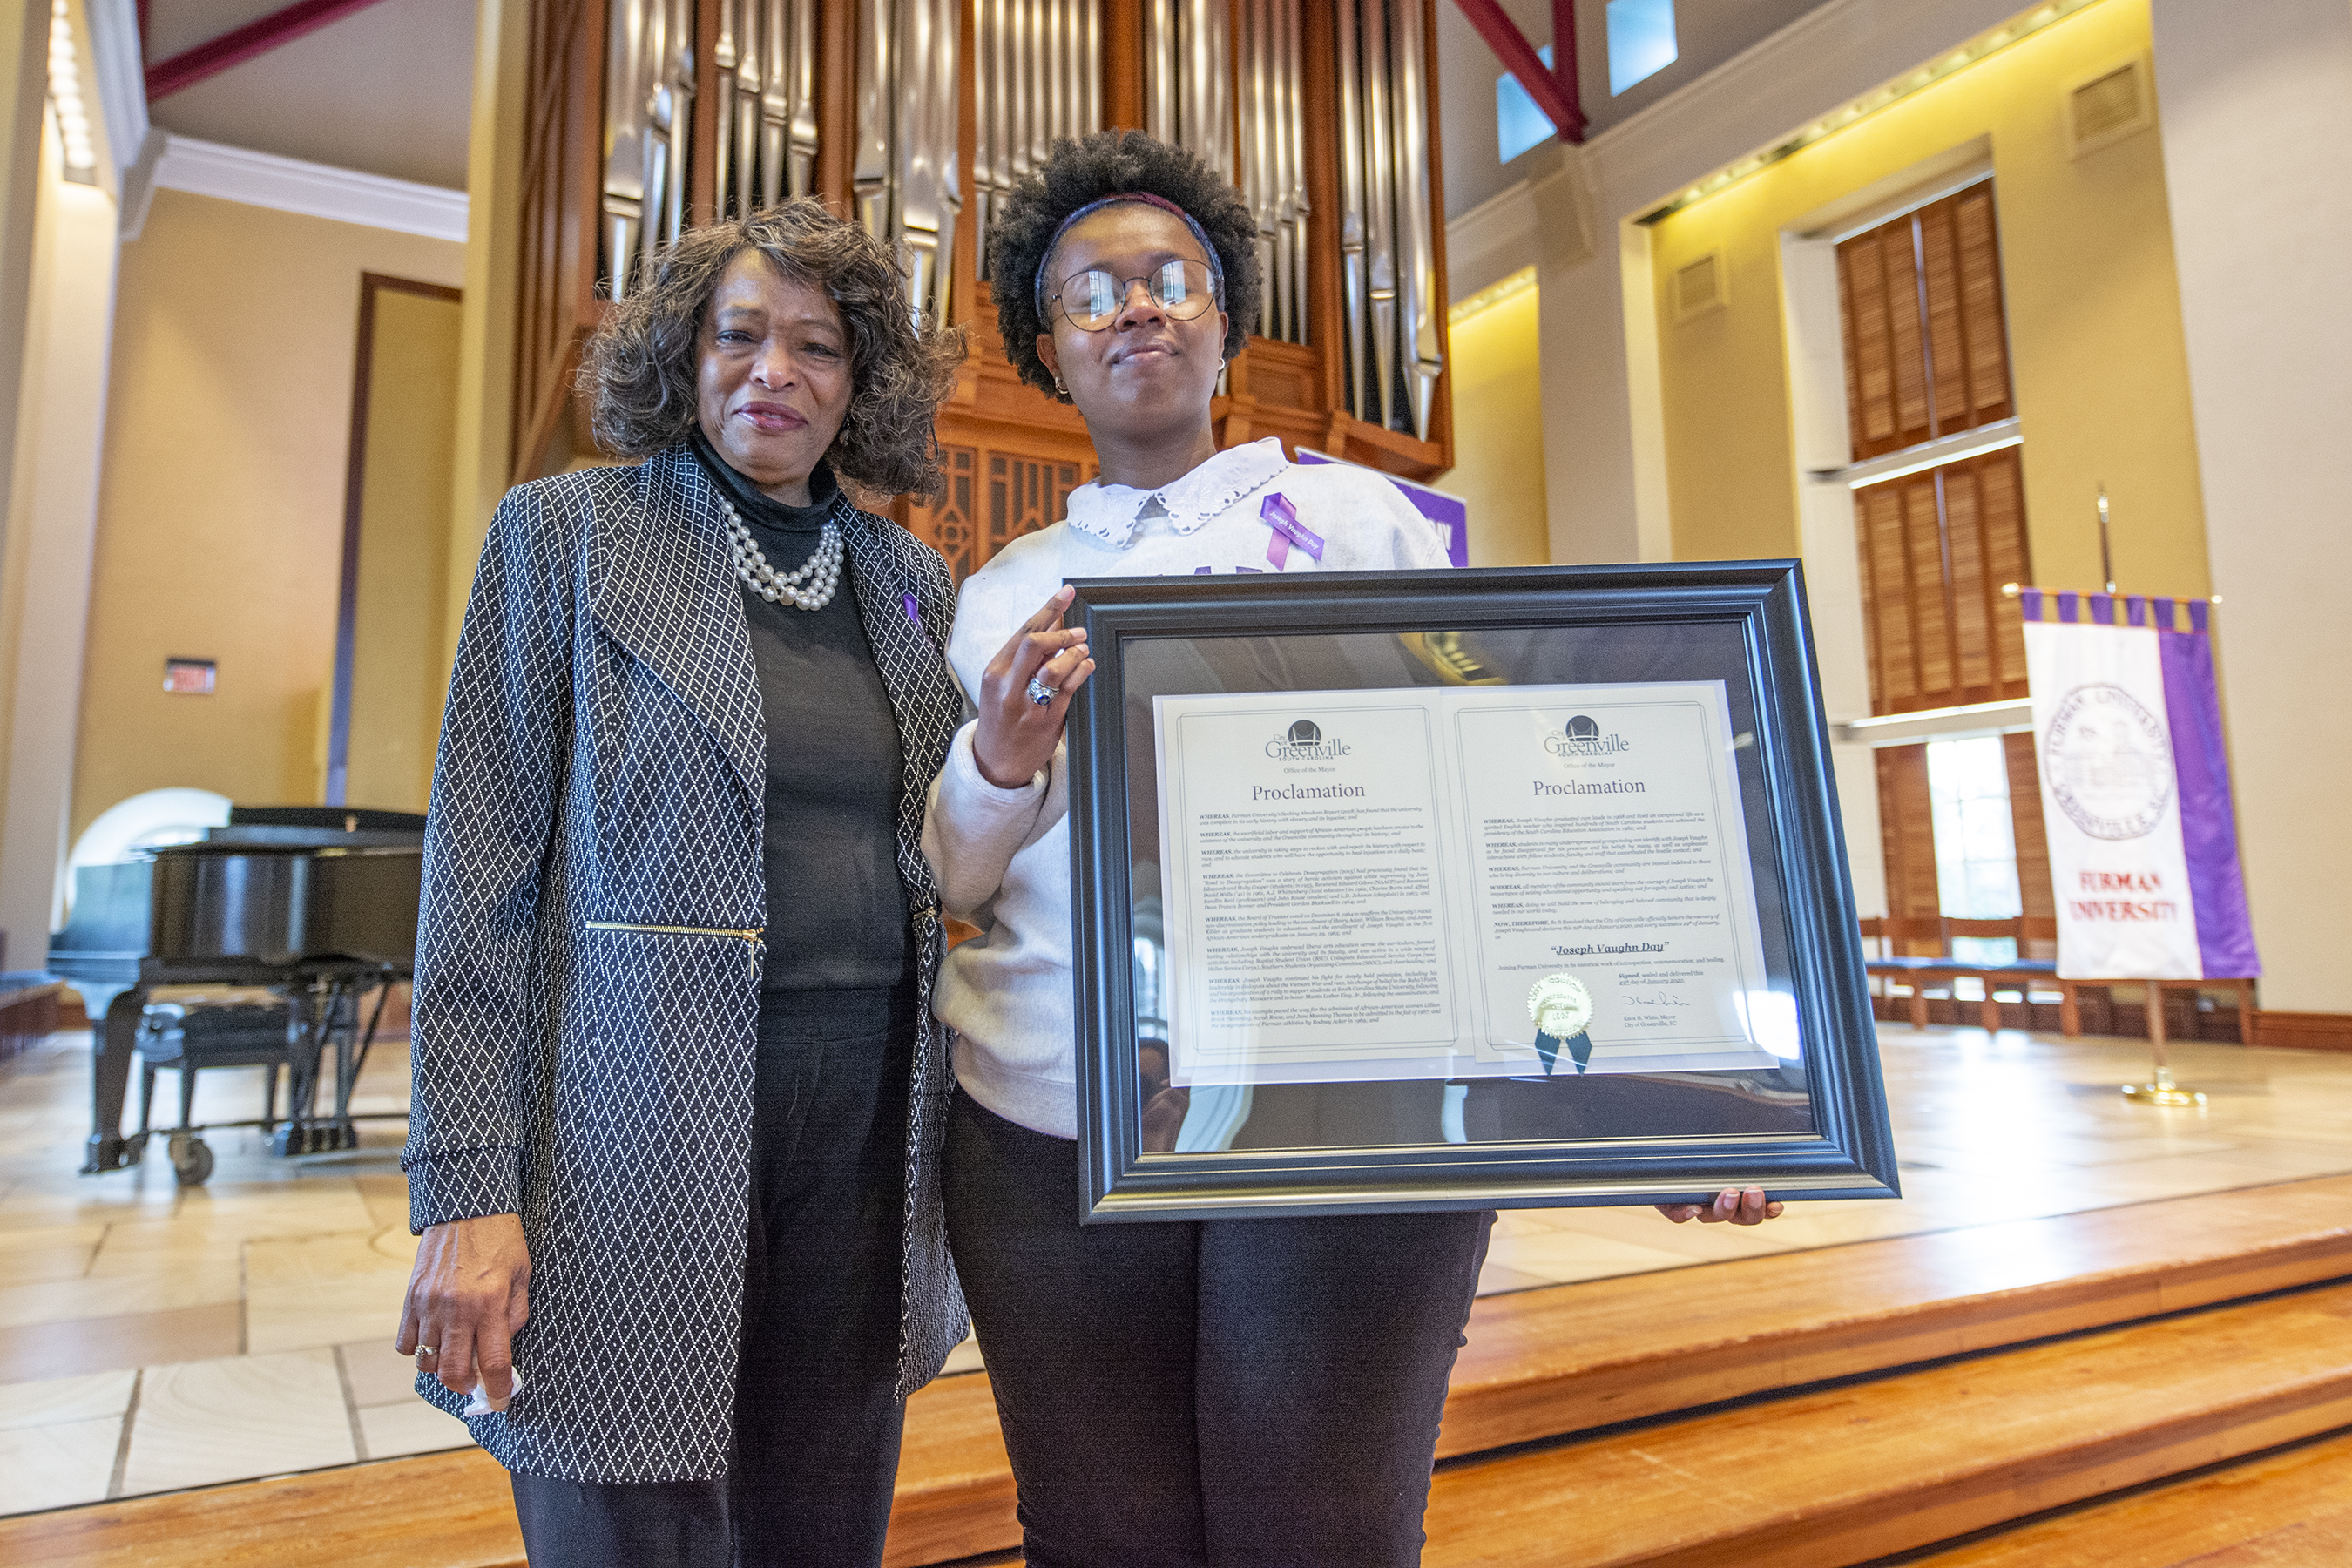 Adare Smith '20 holds a framed print of the city of Greenville's Joseph Vaughn Day Proclamation with Lillian Brock Flemming '71 to her left